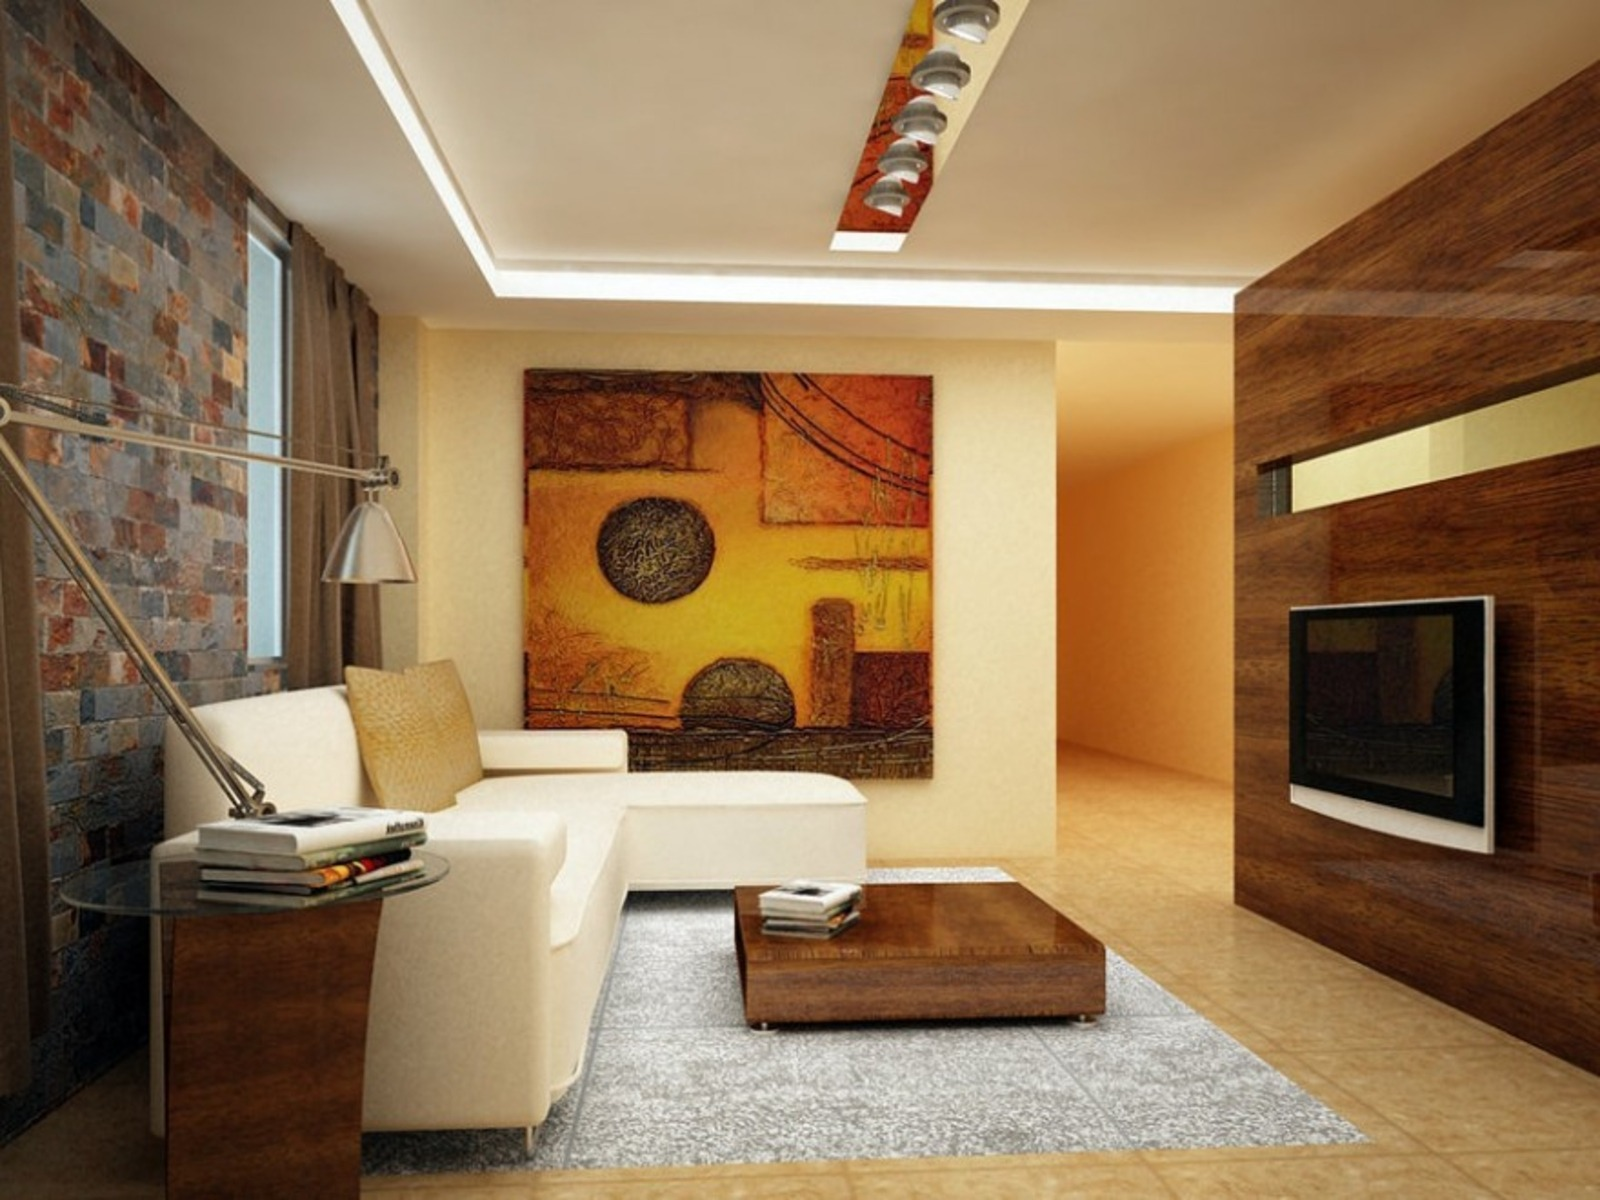 Indian Home Design: 14+ Amazing Living Room Designs Indian Style, Interior And